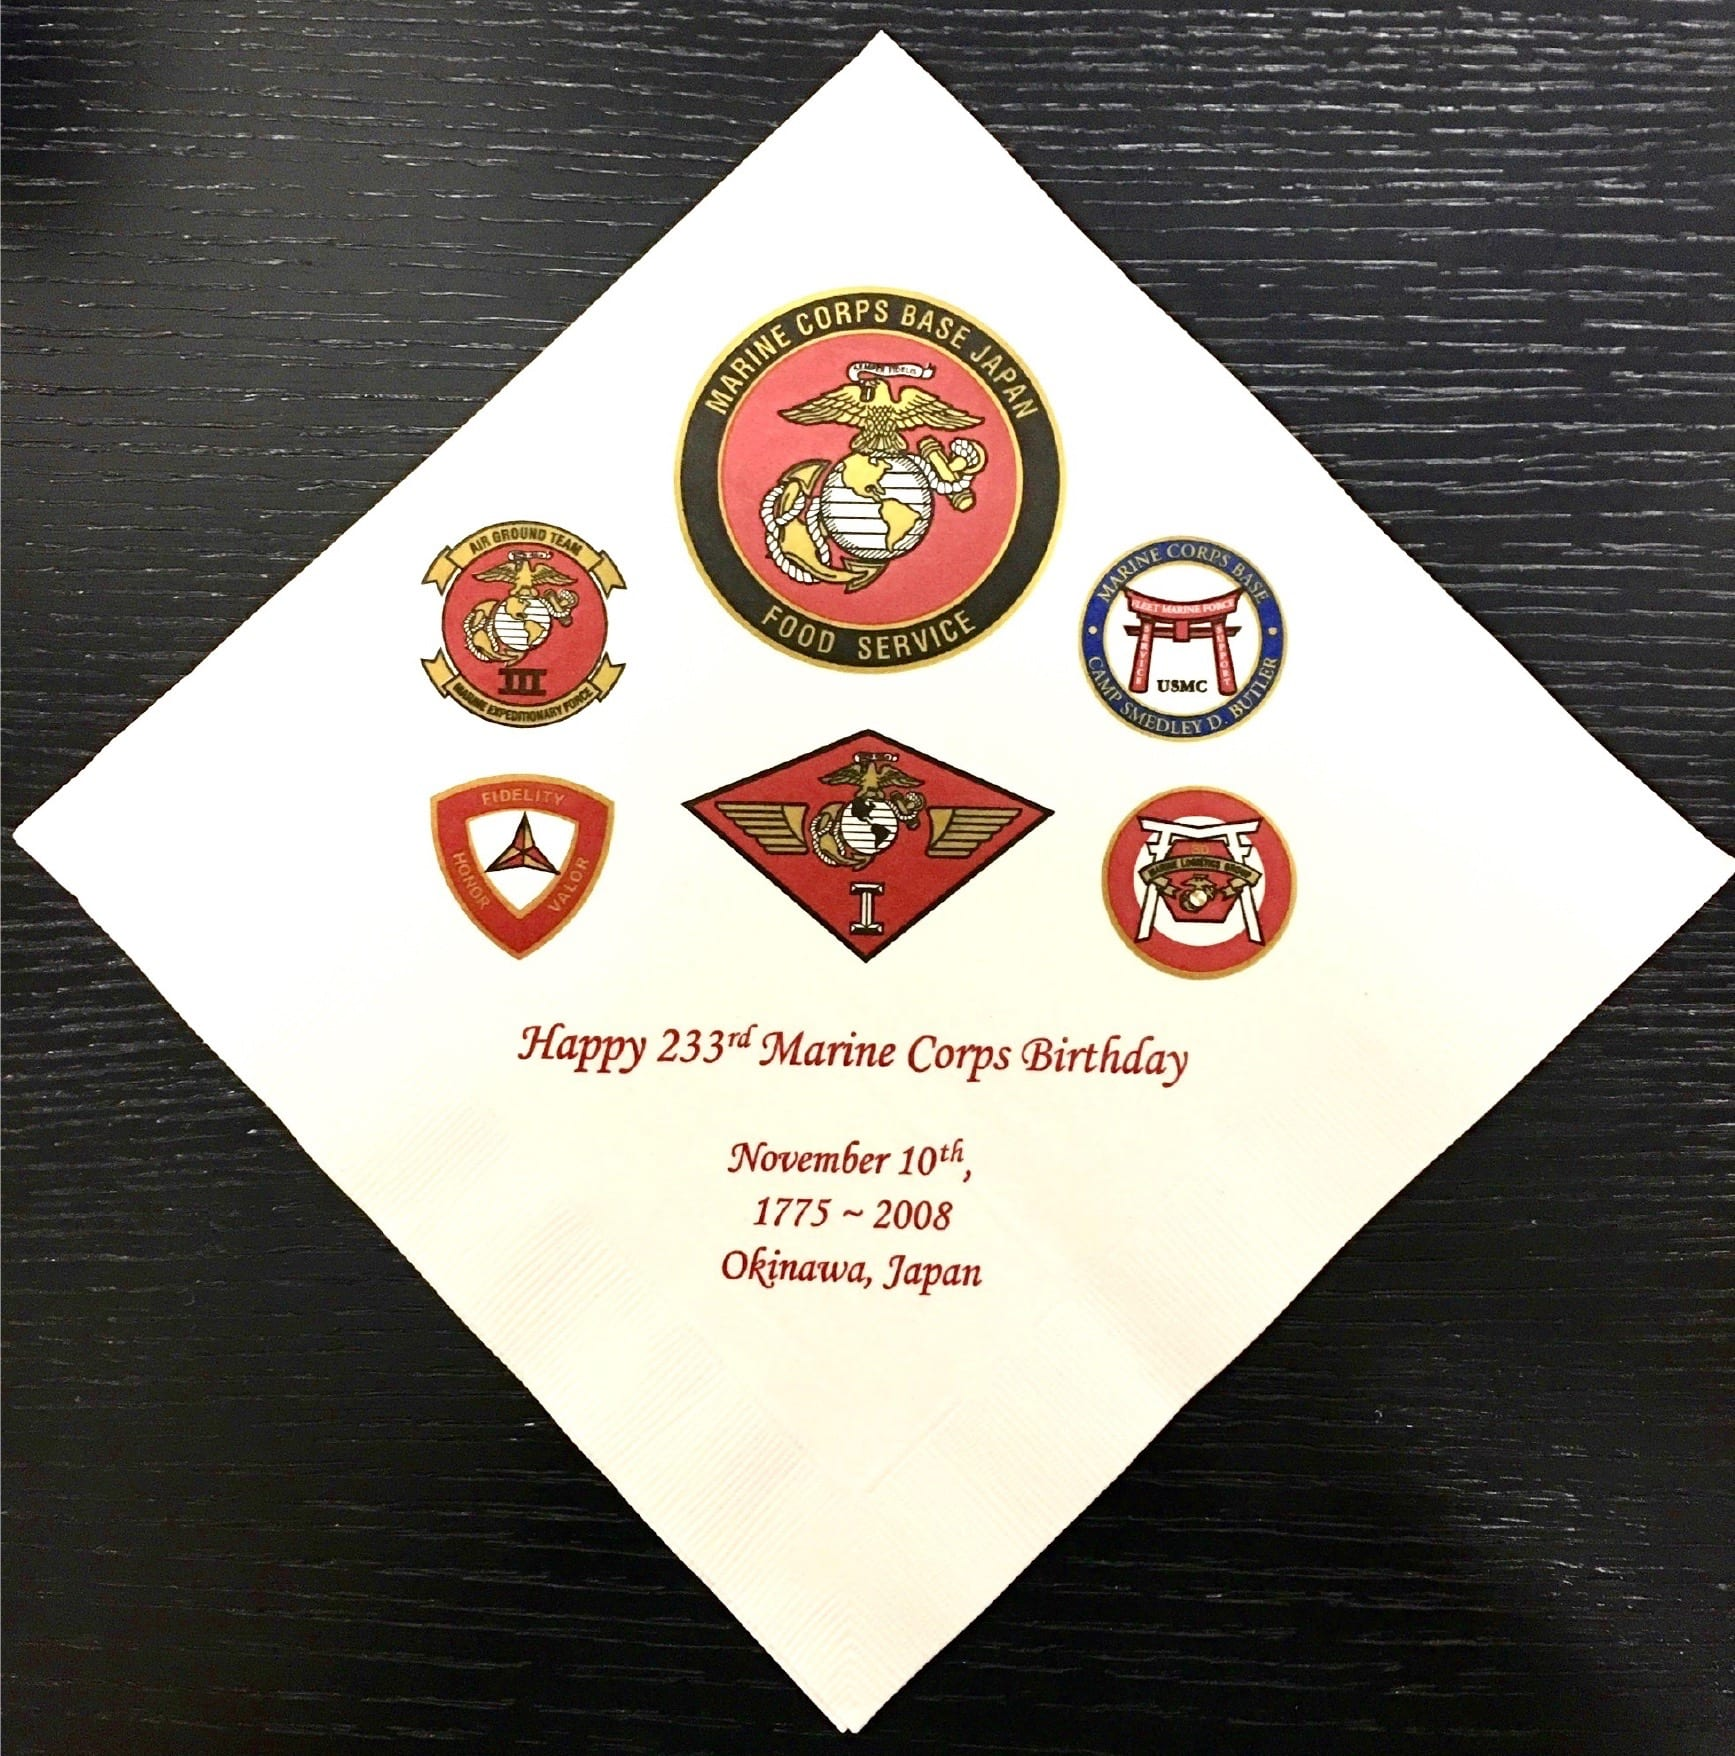 Marine Corps Event, 4 colors on square dinner napkin